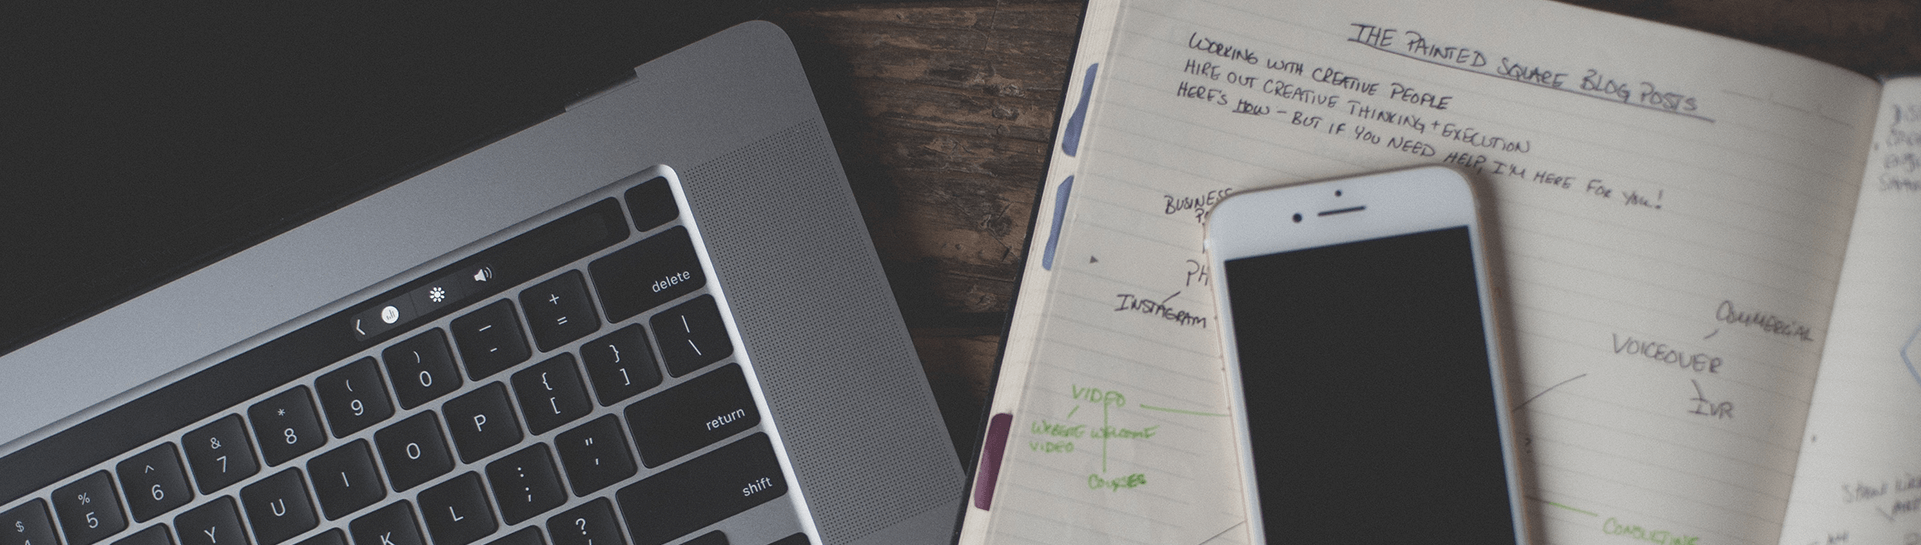 Laptop, phone and day planner - Tulane School of Professional Advancement